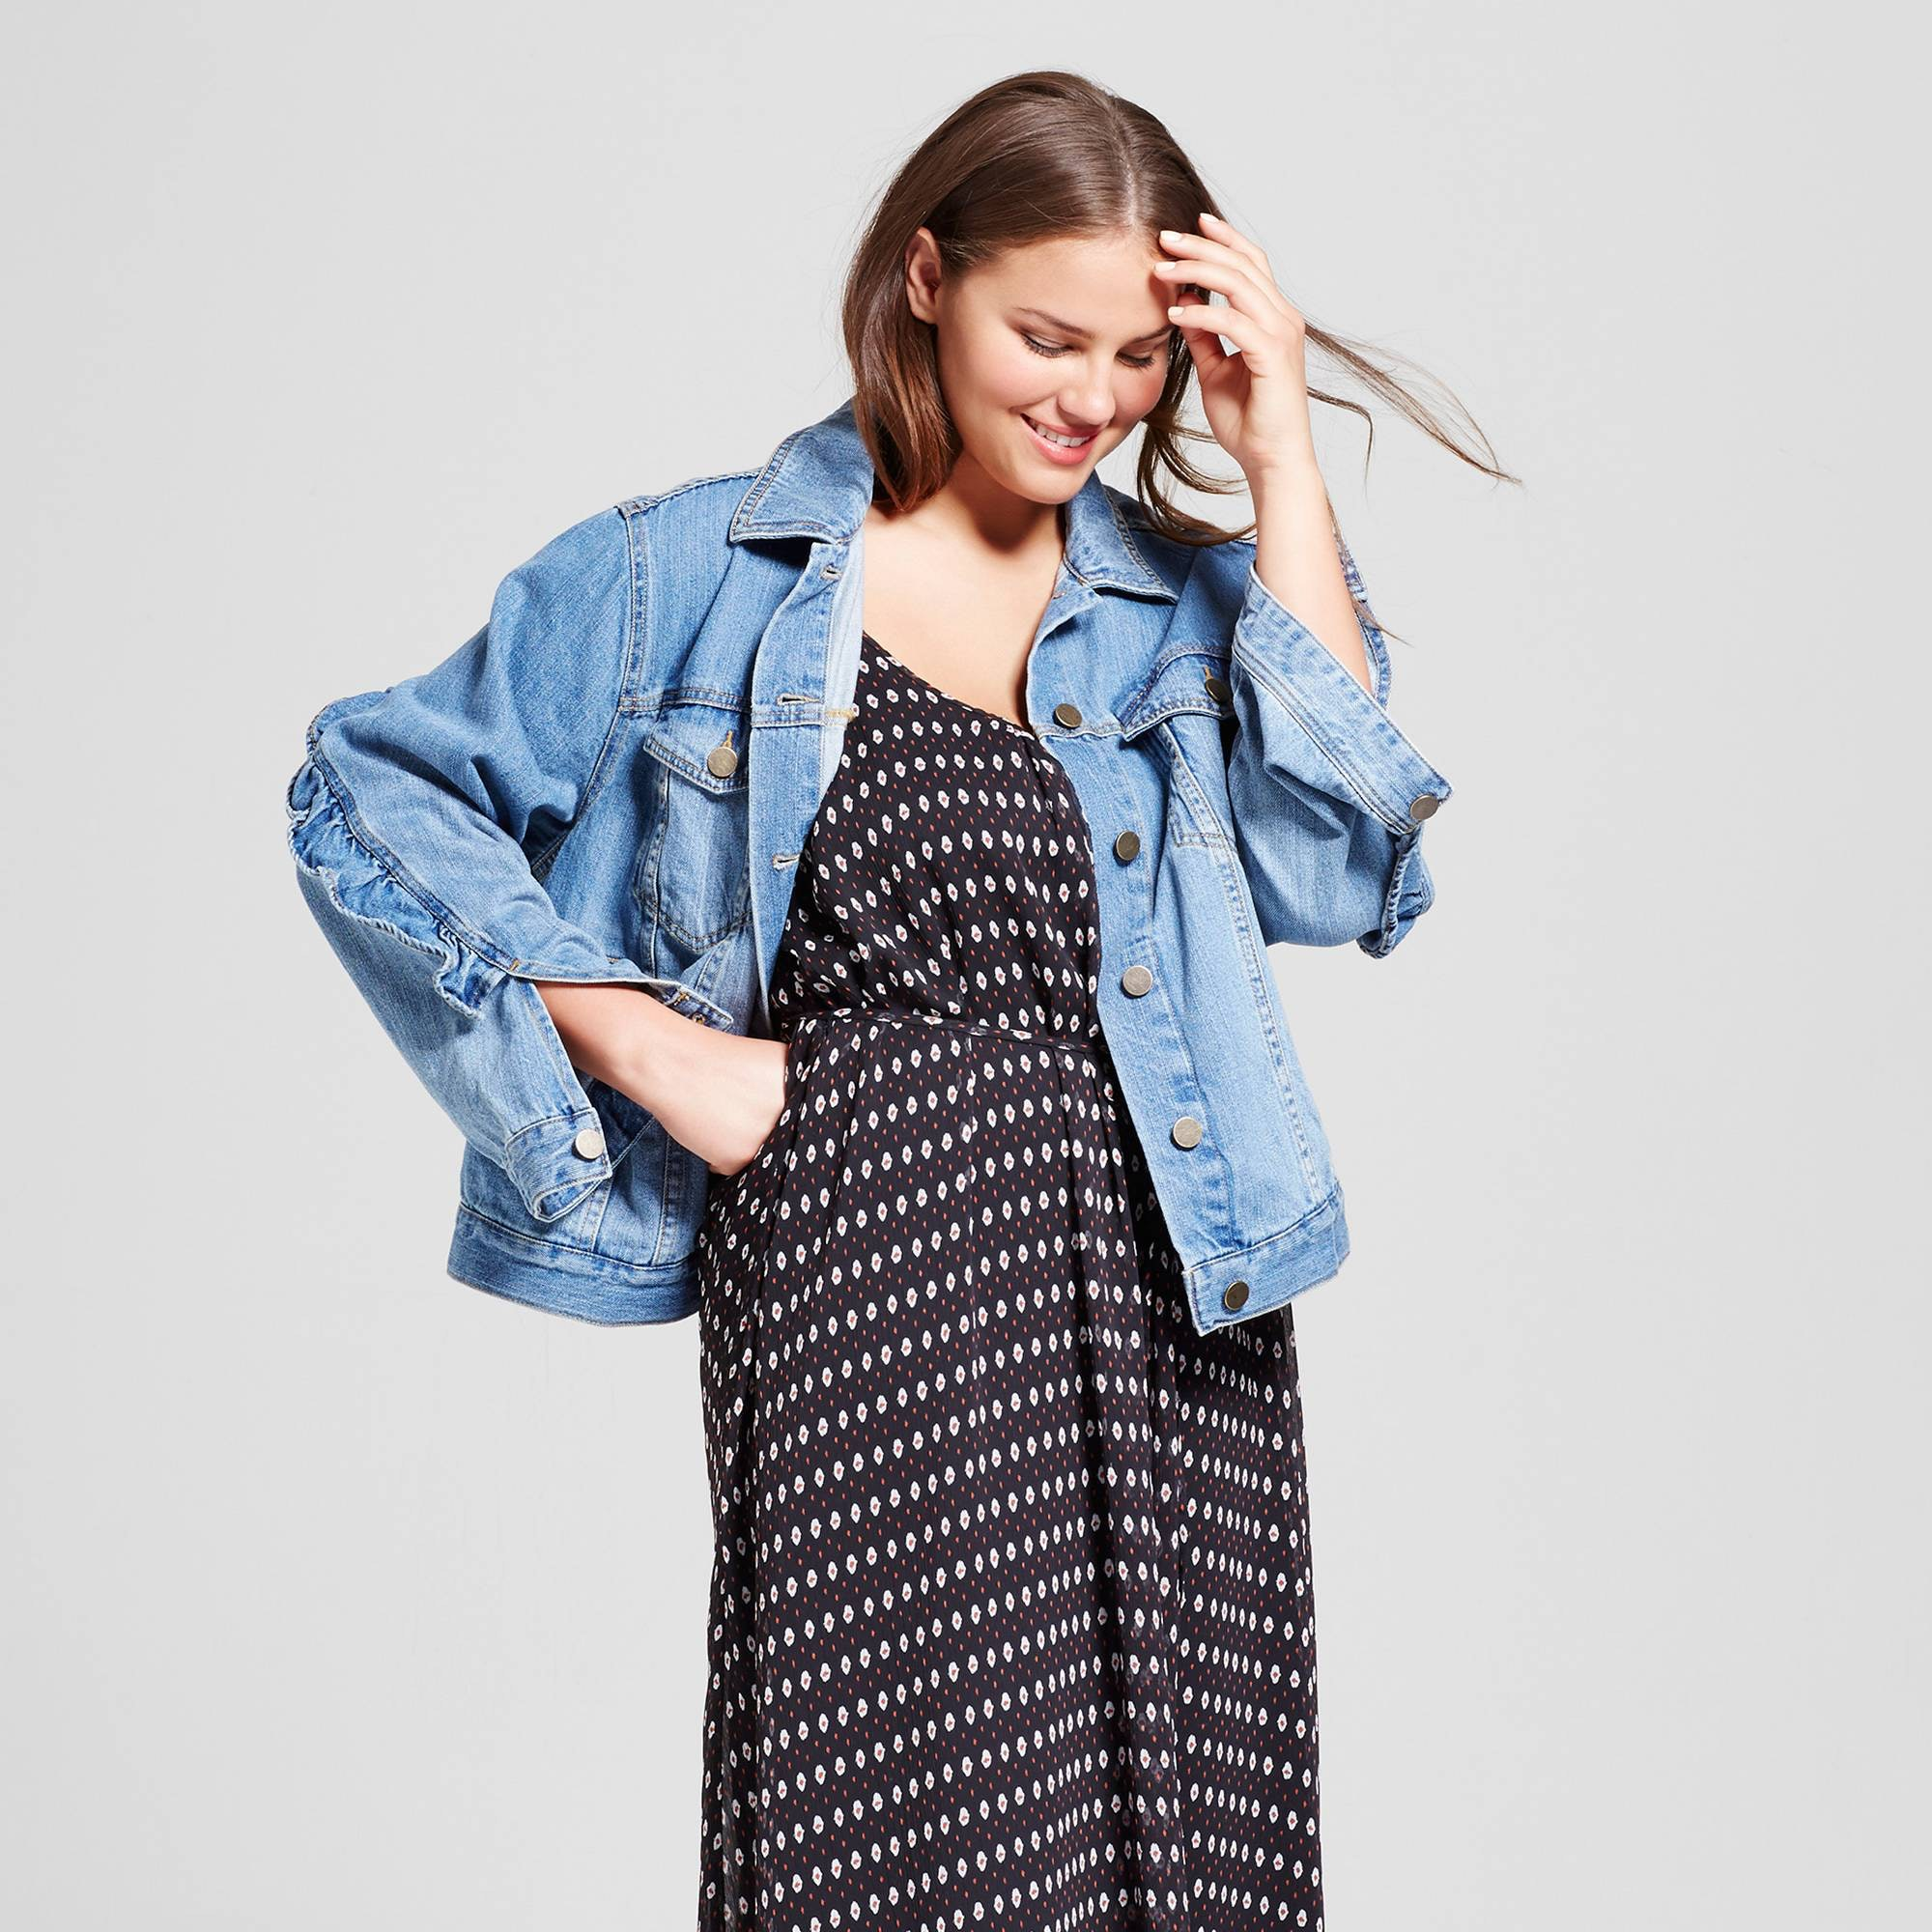 2bdda6d95 30 Oversized Denim Jackets That Make The Perfect Addition To Any ...